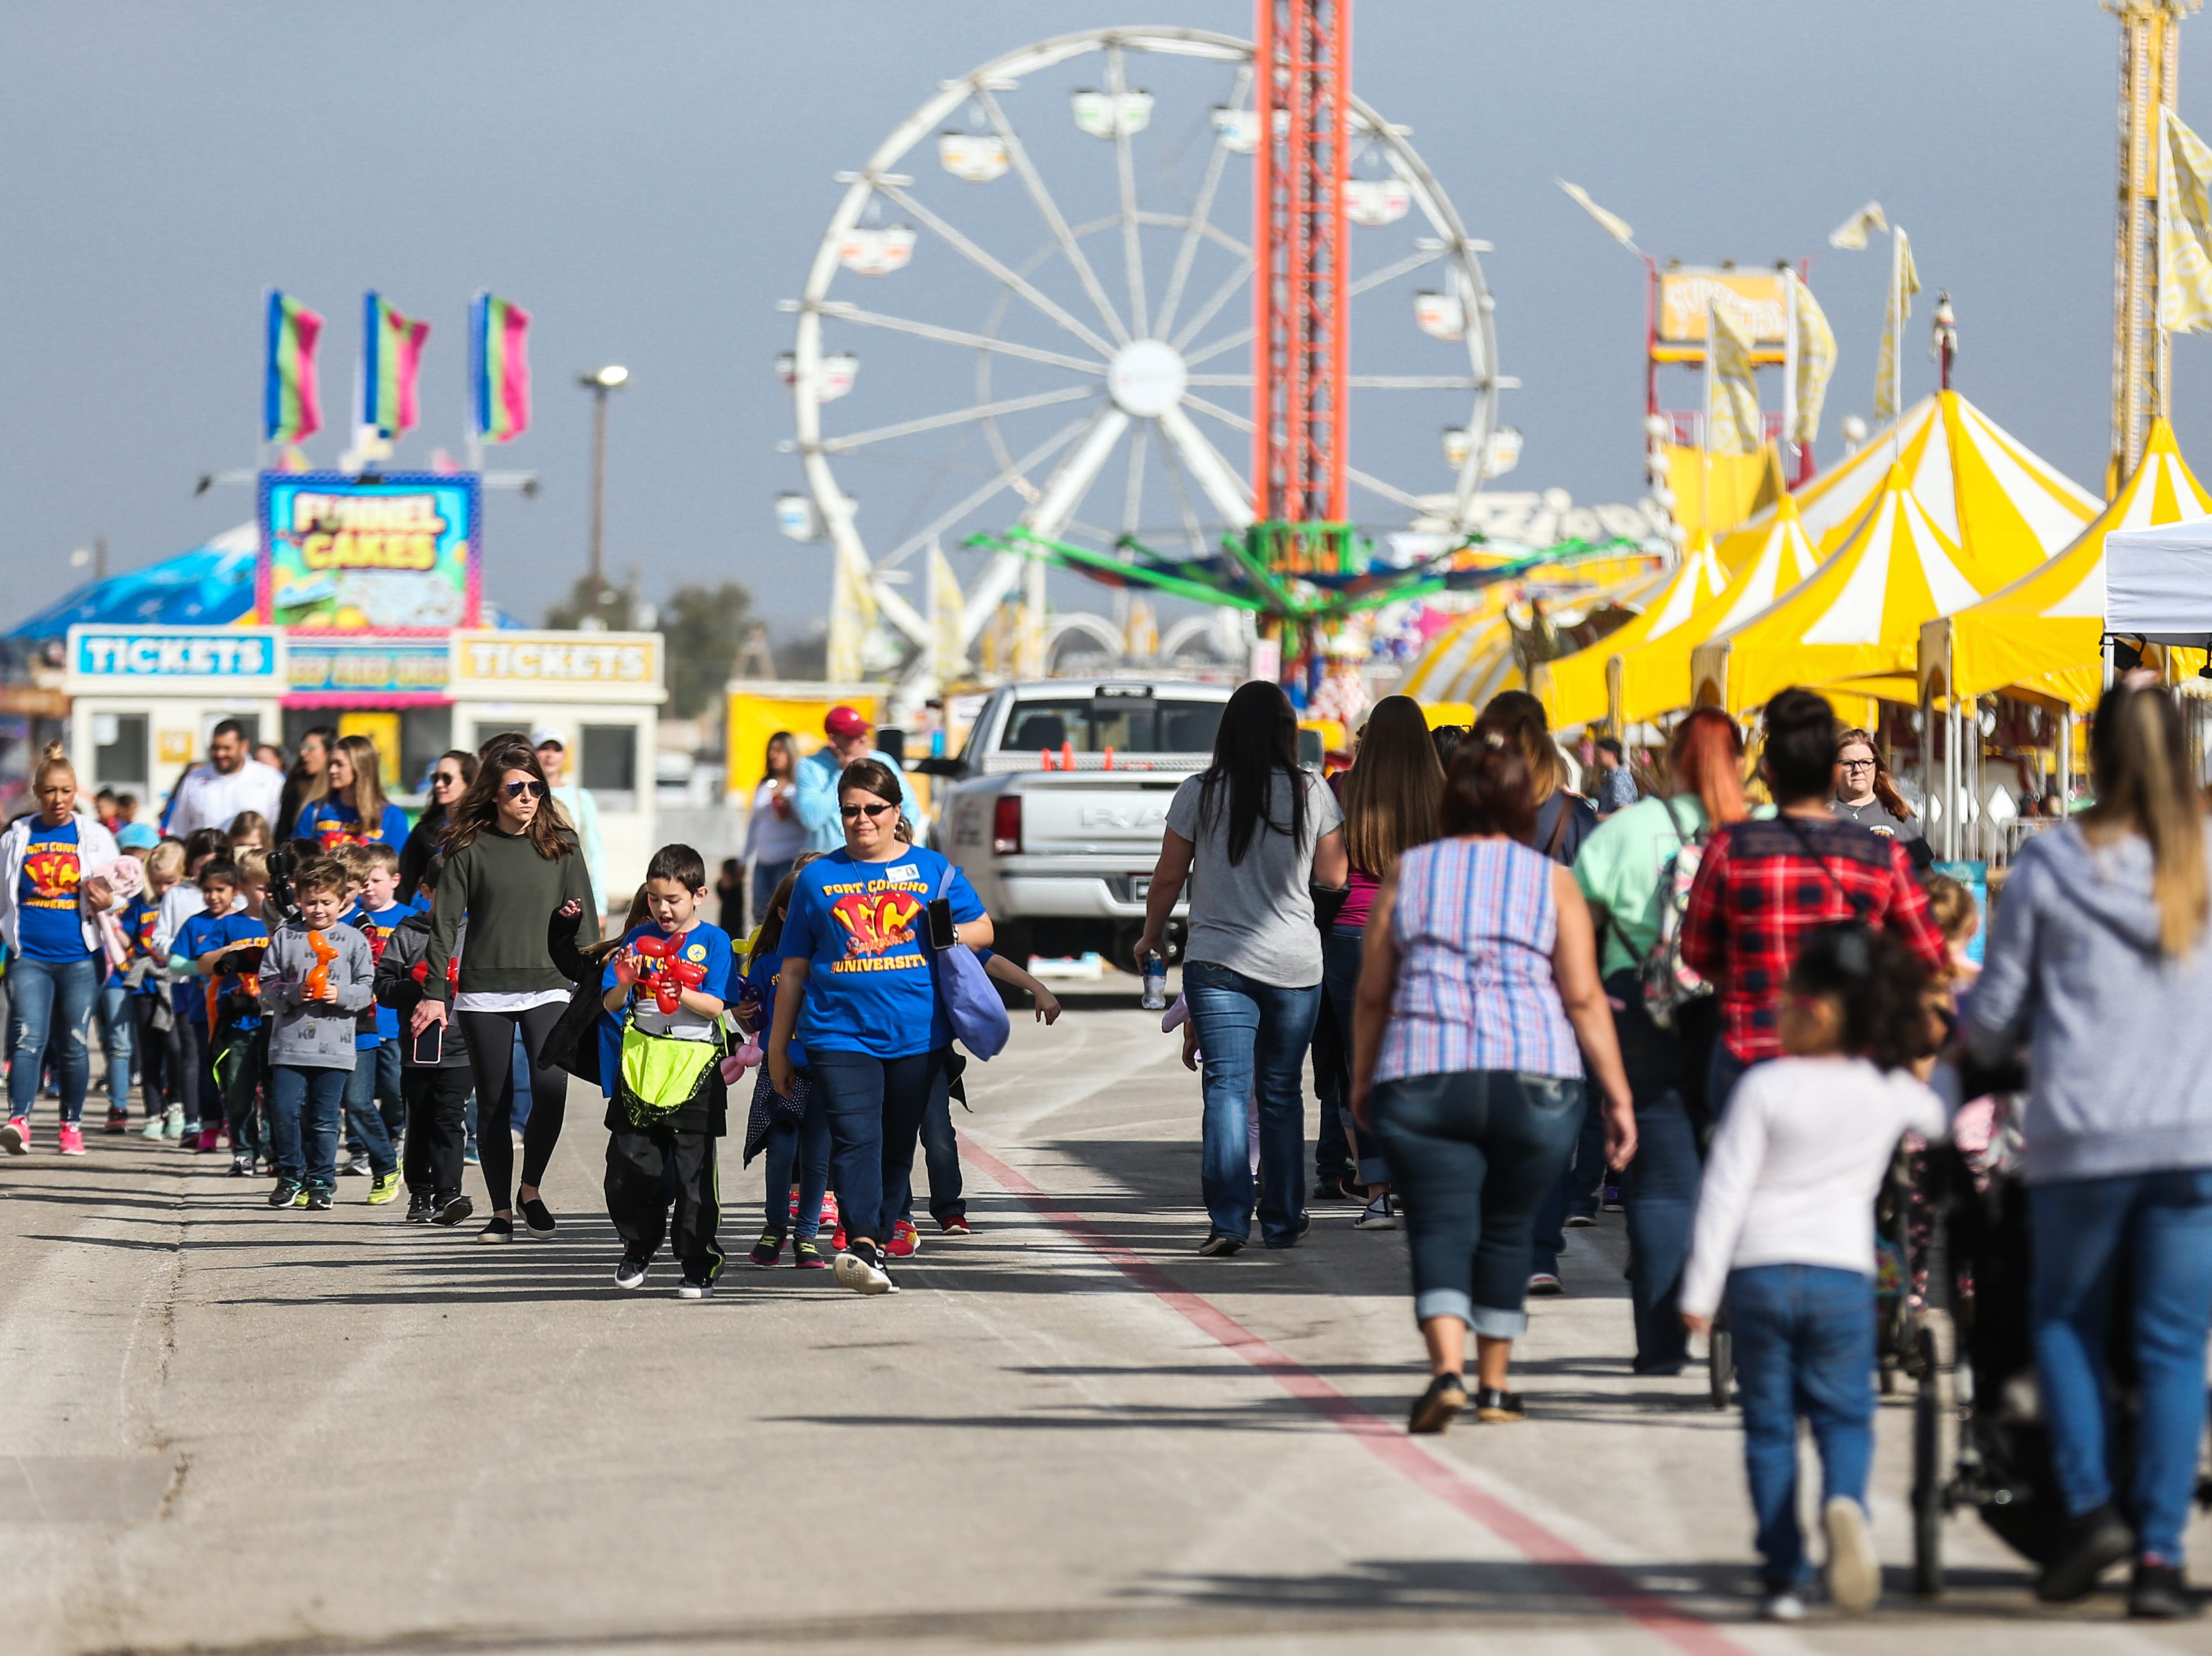 Attendees walk around the carnival grounds during the San Angelo Stock Show & Rodeo Tuesday, Feb. 5, 2019, at the San Angelo Fairgrounds.